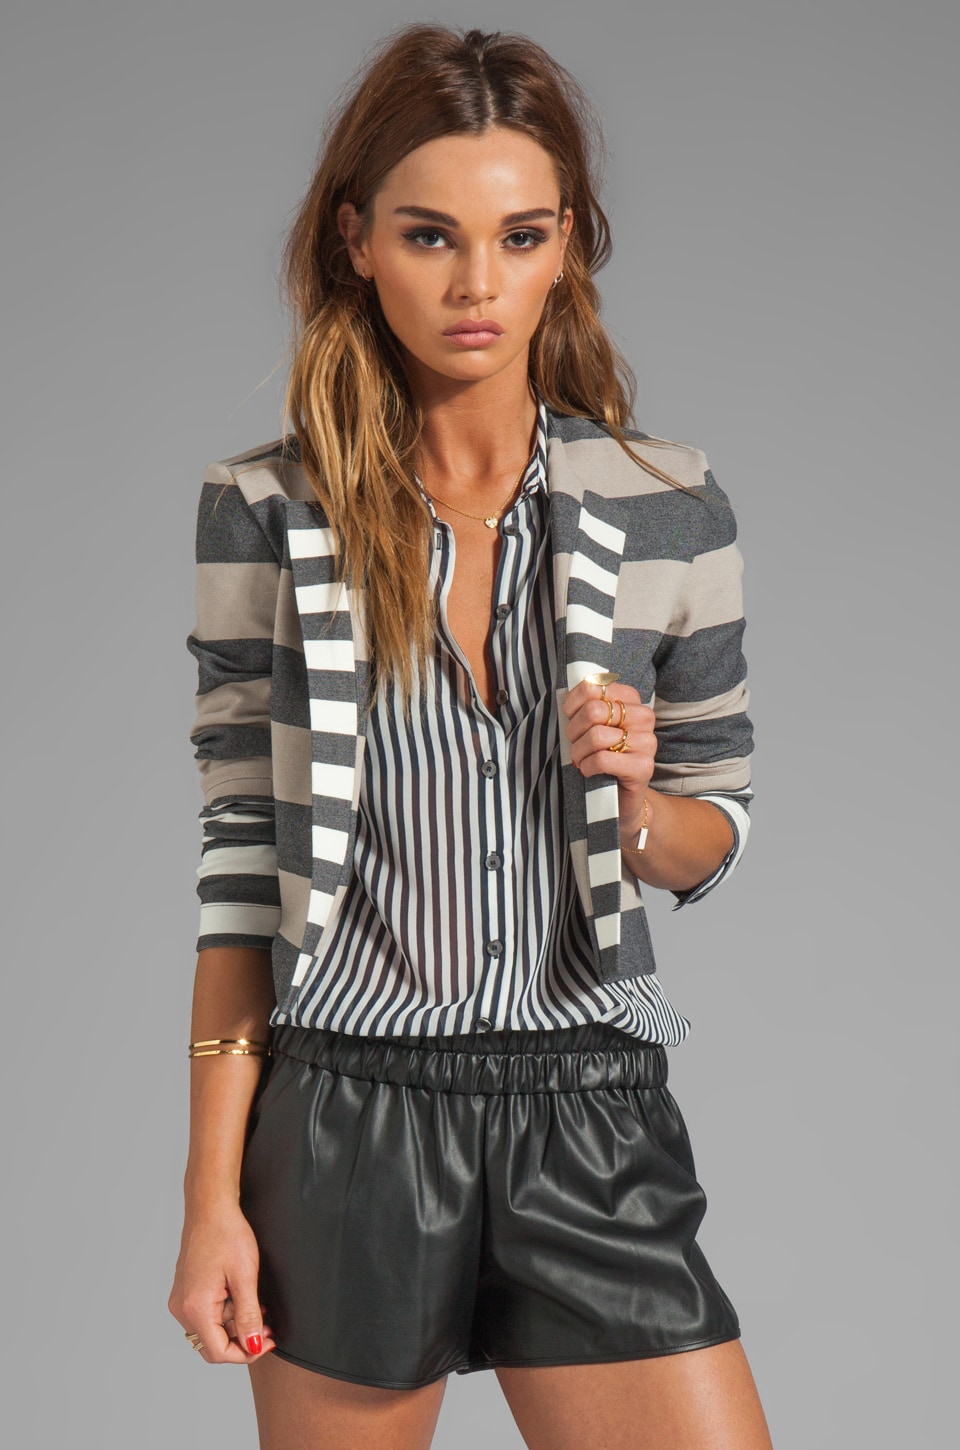 DEREK LAM 10 CROSBY RUNWAY Cardigan Jacket in Combo Stripe